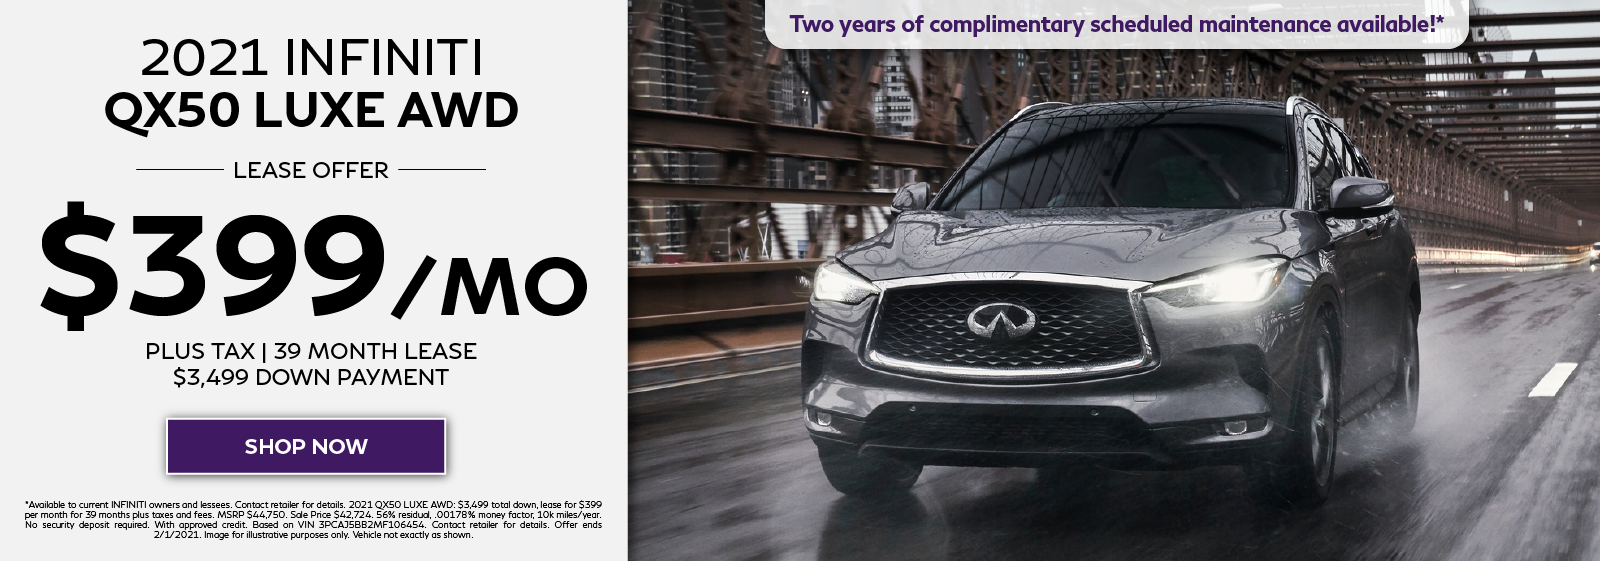 Well-qualified lessees can lease a new 2021 INFINITI QX50 LUXE AWD for $399 per month for 39 months plus get two years complimentary scheduled maintenance. Click to shop now.